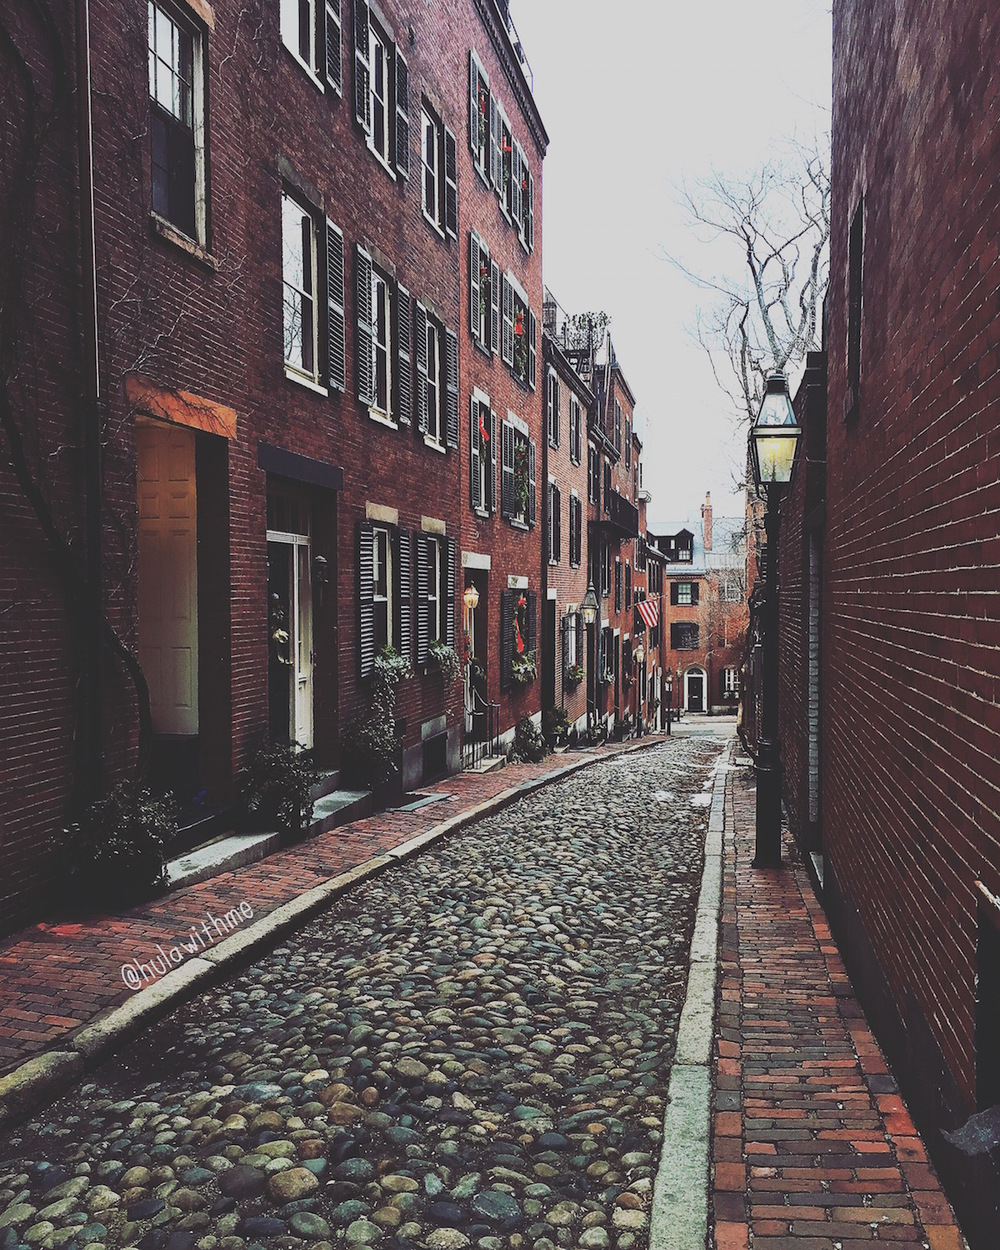 Boston Charm: Acorn Street, the most photographed street in the historical Beacon Hill neighborhood.